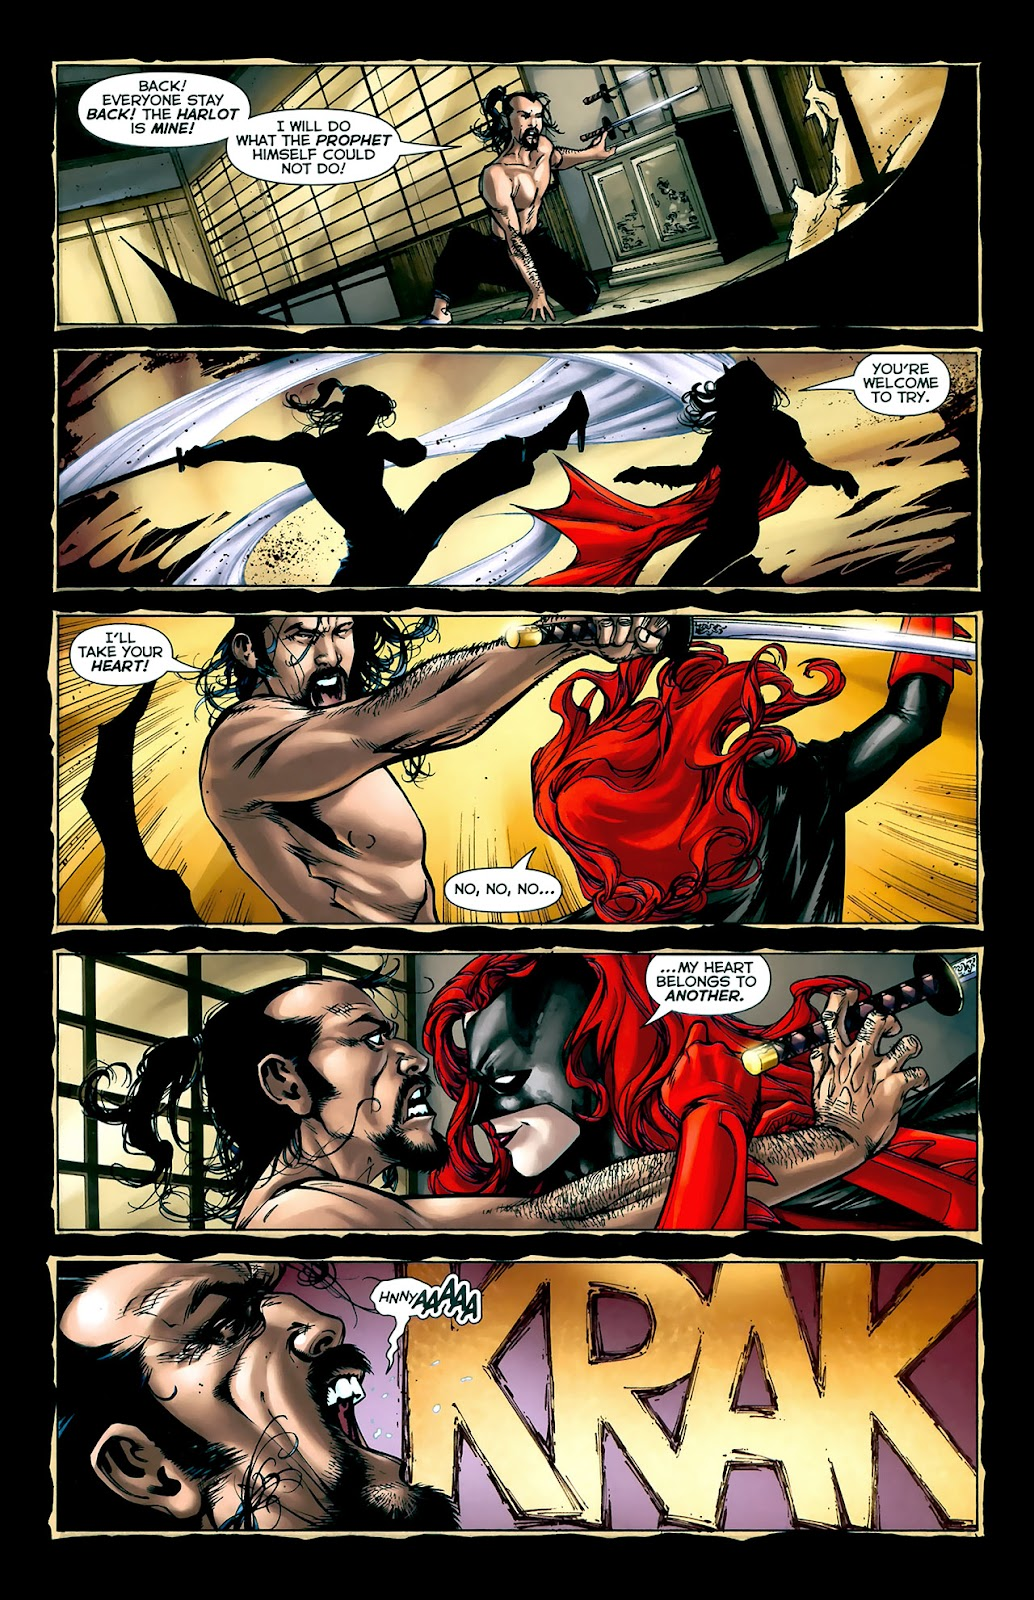 Crime Bible: The Five Lessons of Blood issue 3 - Page 13